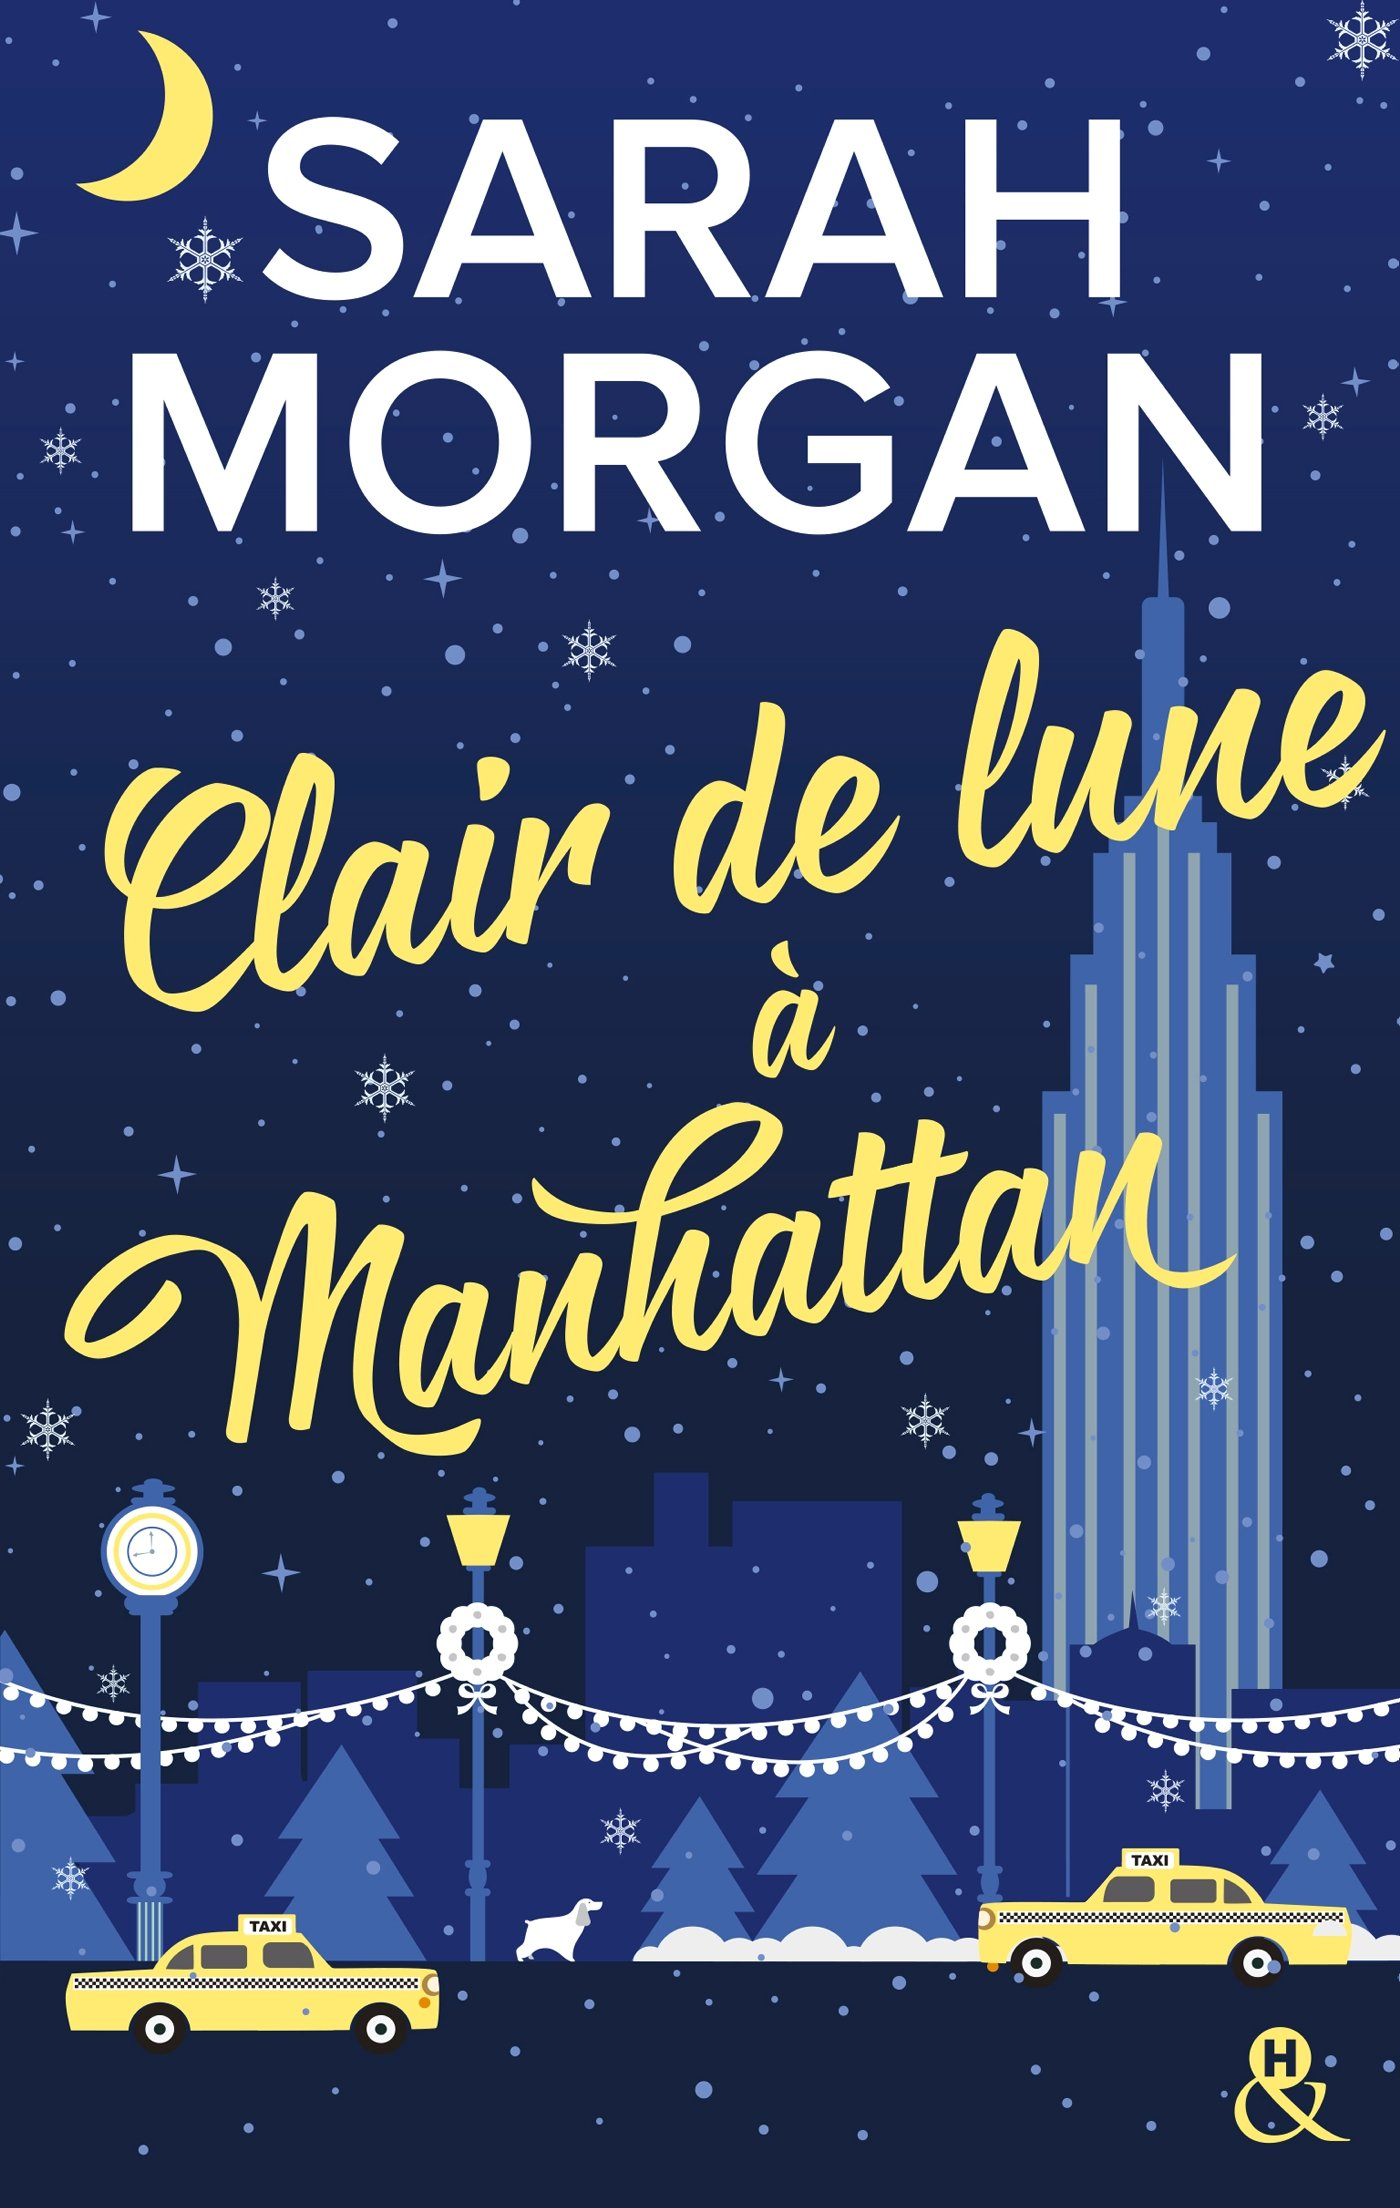 clair?tid=468797cbb75403c19c528e1092e0fa44 - From New York with love - Tome 3 : Clair de lune à Manhattan de Sarah Morgan 81Wpa4ZfXOL